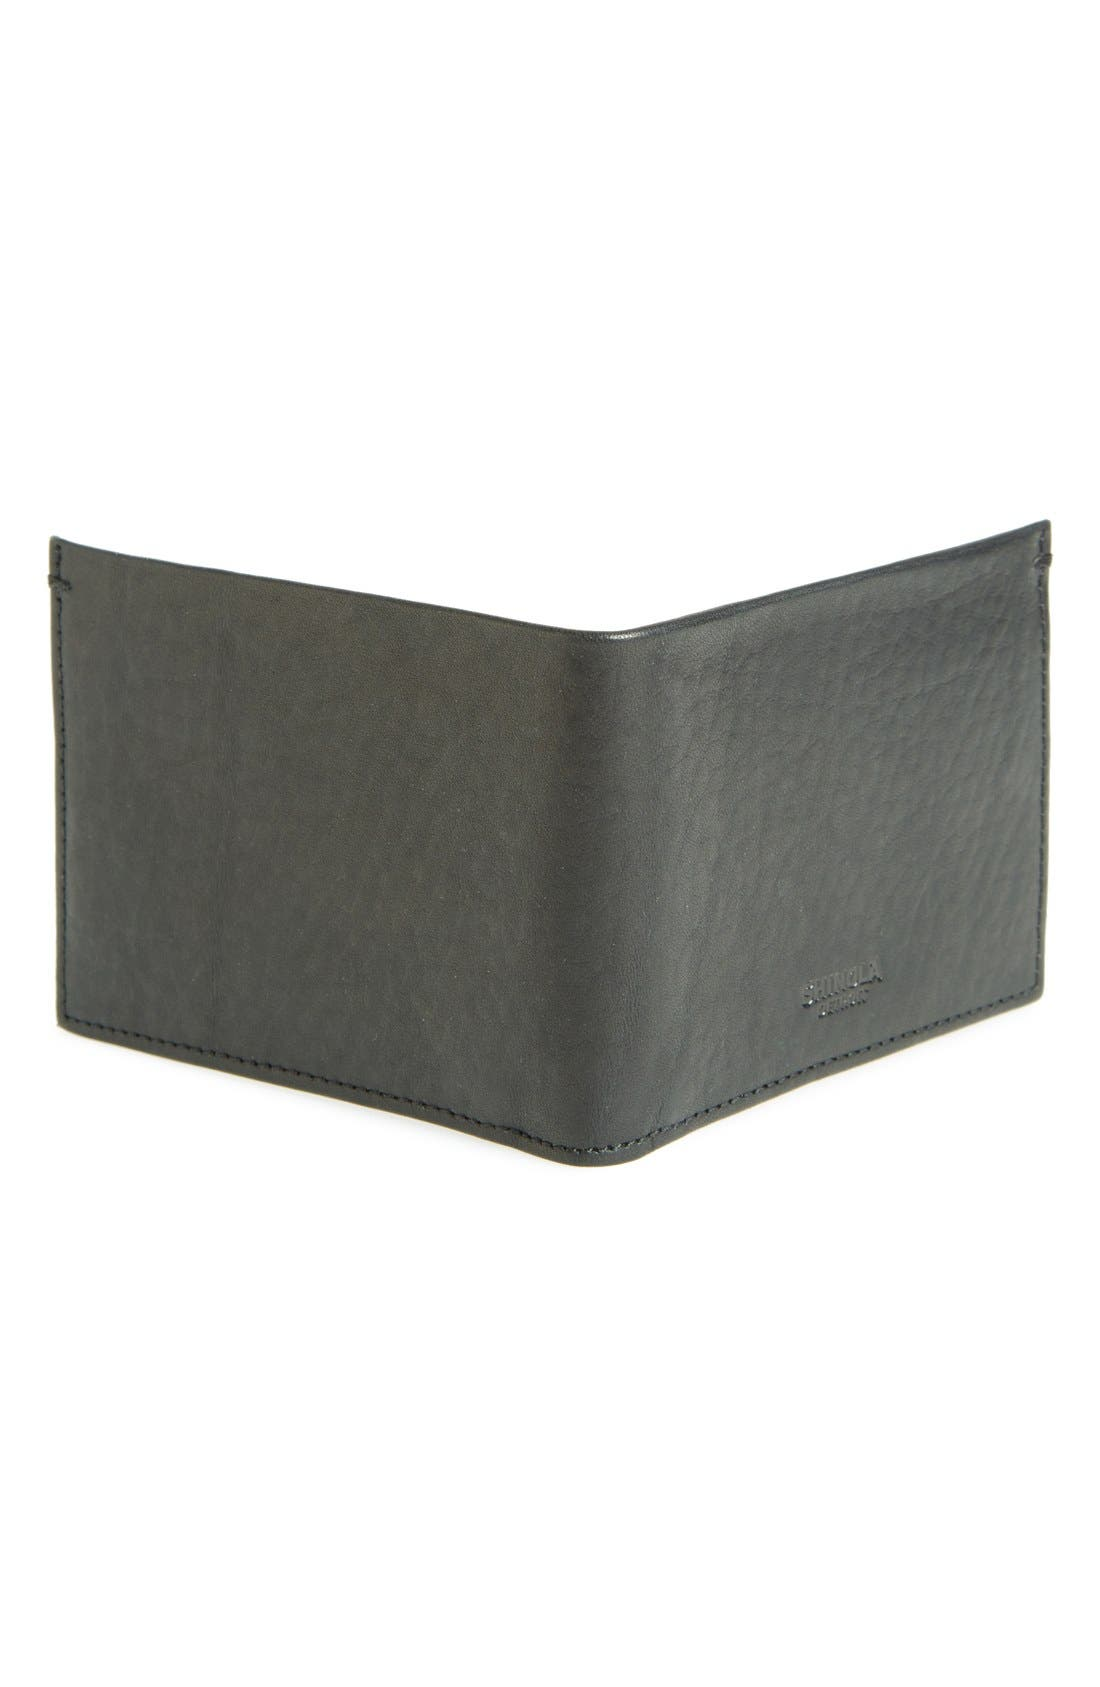 Alternate Image 3  - Shinola Slim Bifold Leather Wallet